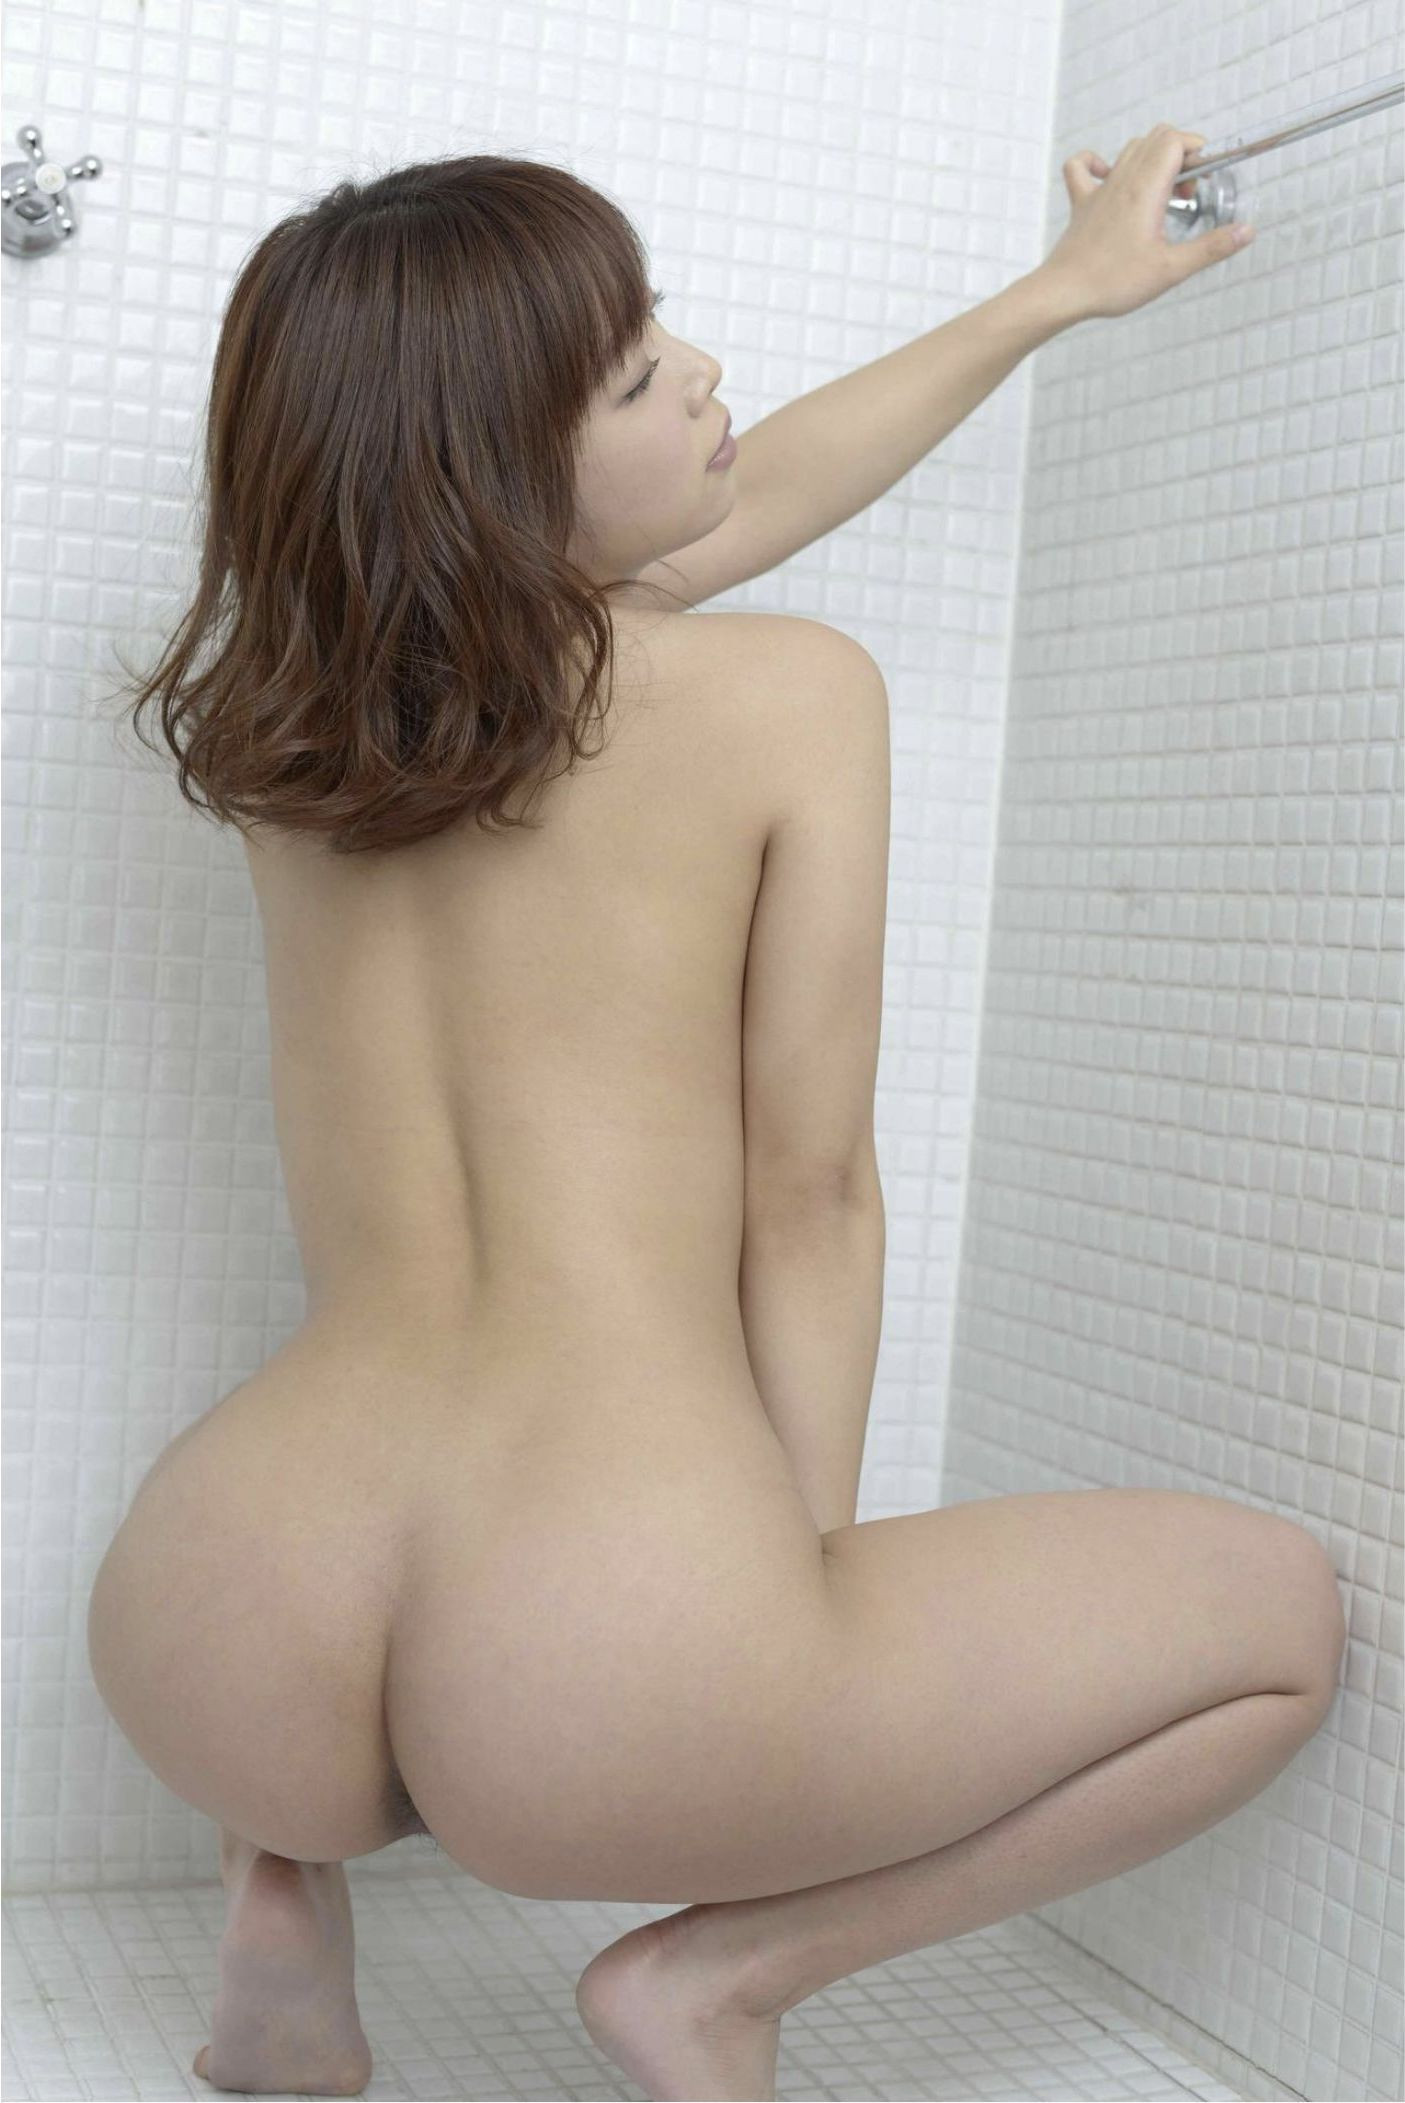 SOFT ON DEMAND GRAVURE COLLECTION 紗倉まな02 photo 109